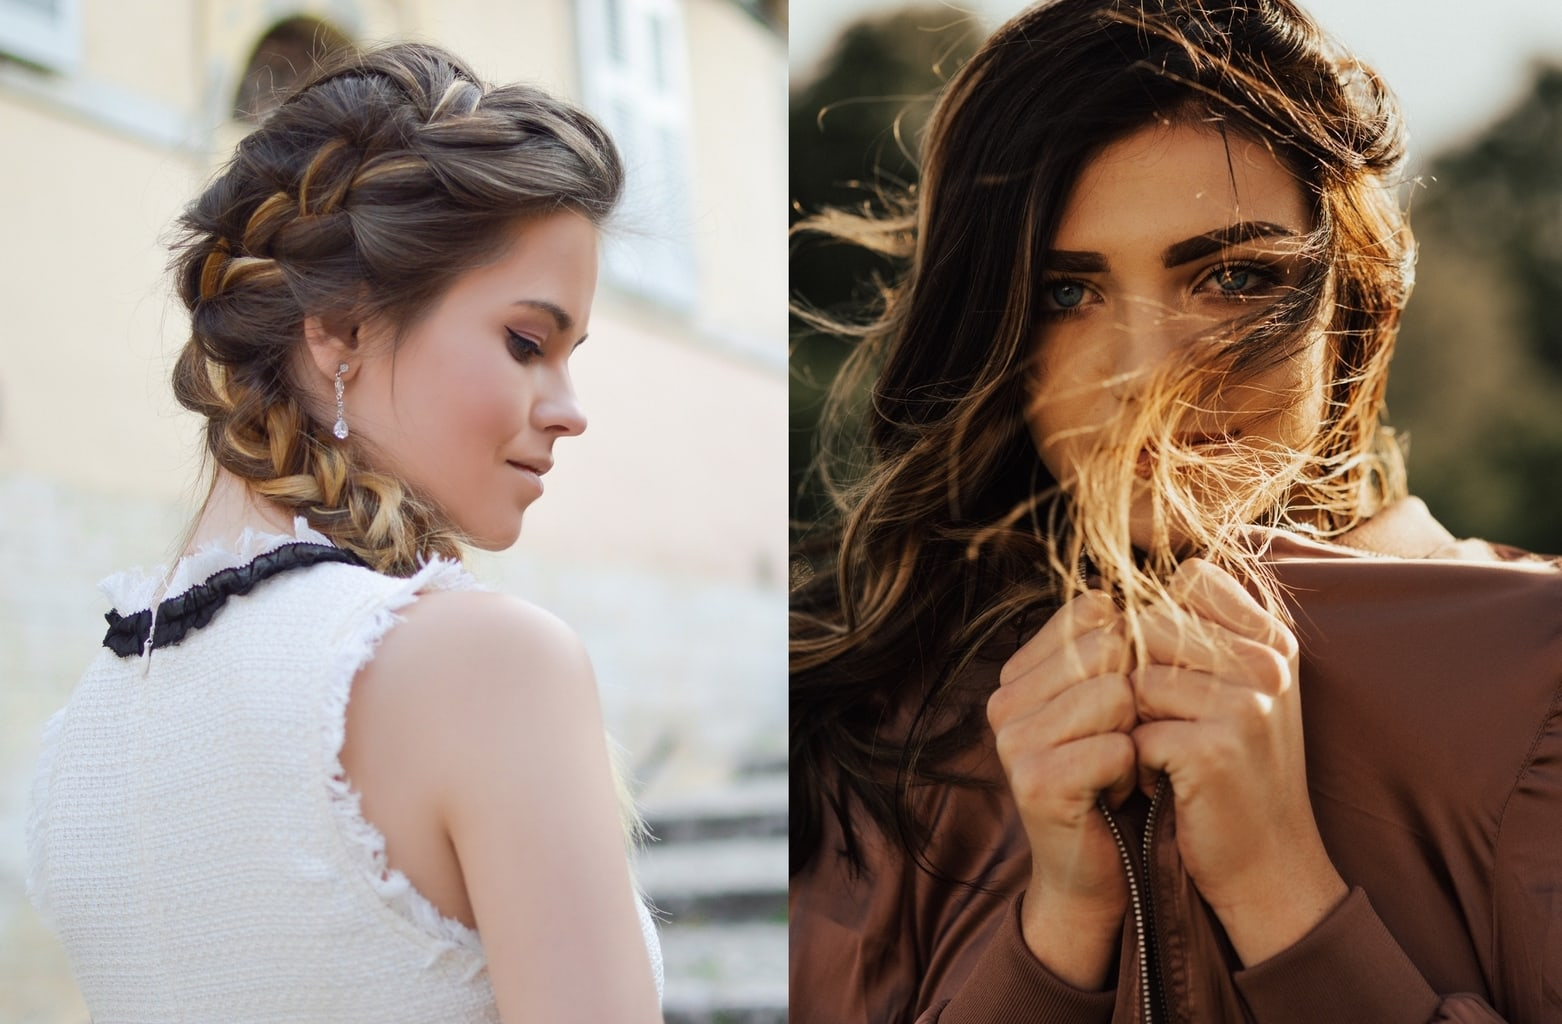 Interview Hair ideas -- dos and don'ts: Work hairstyles for interviews